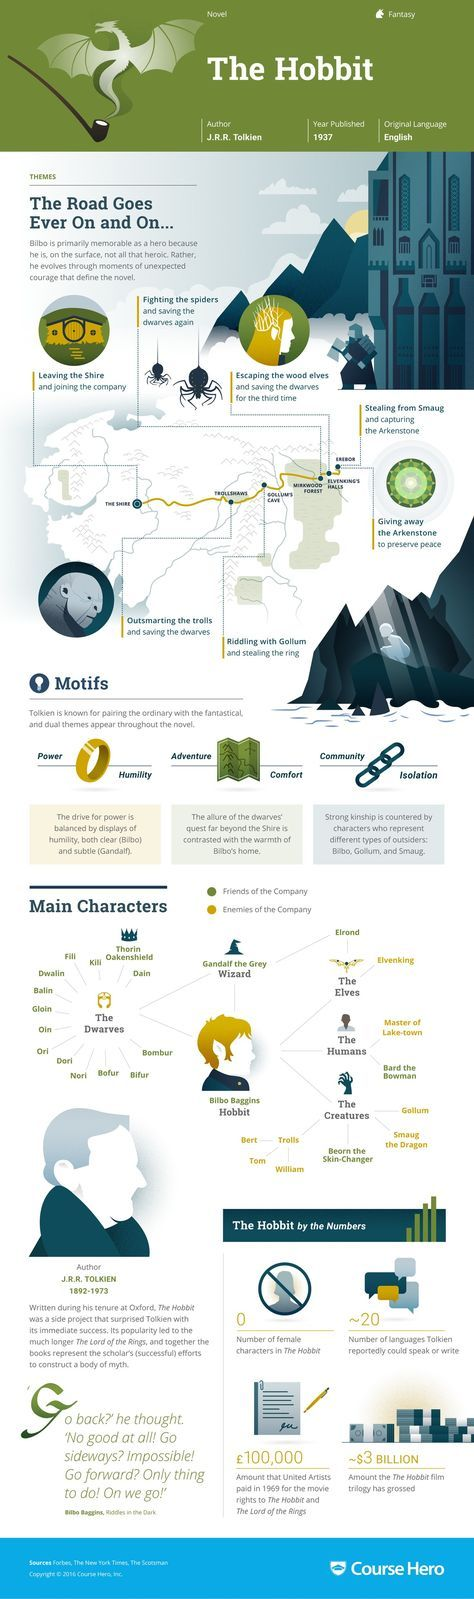 The Hobbit Infographic | Course Hero